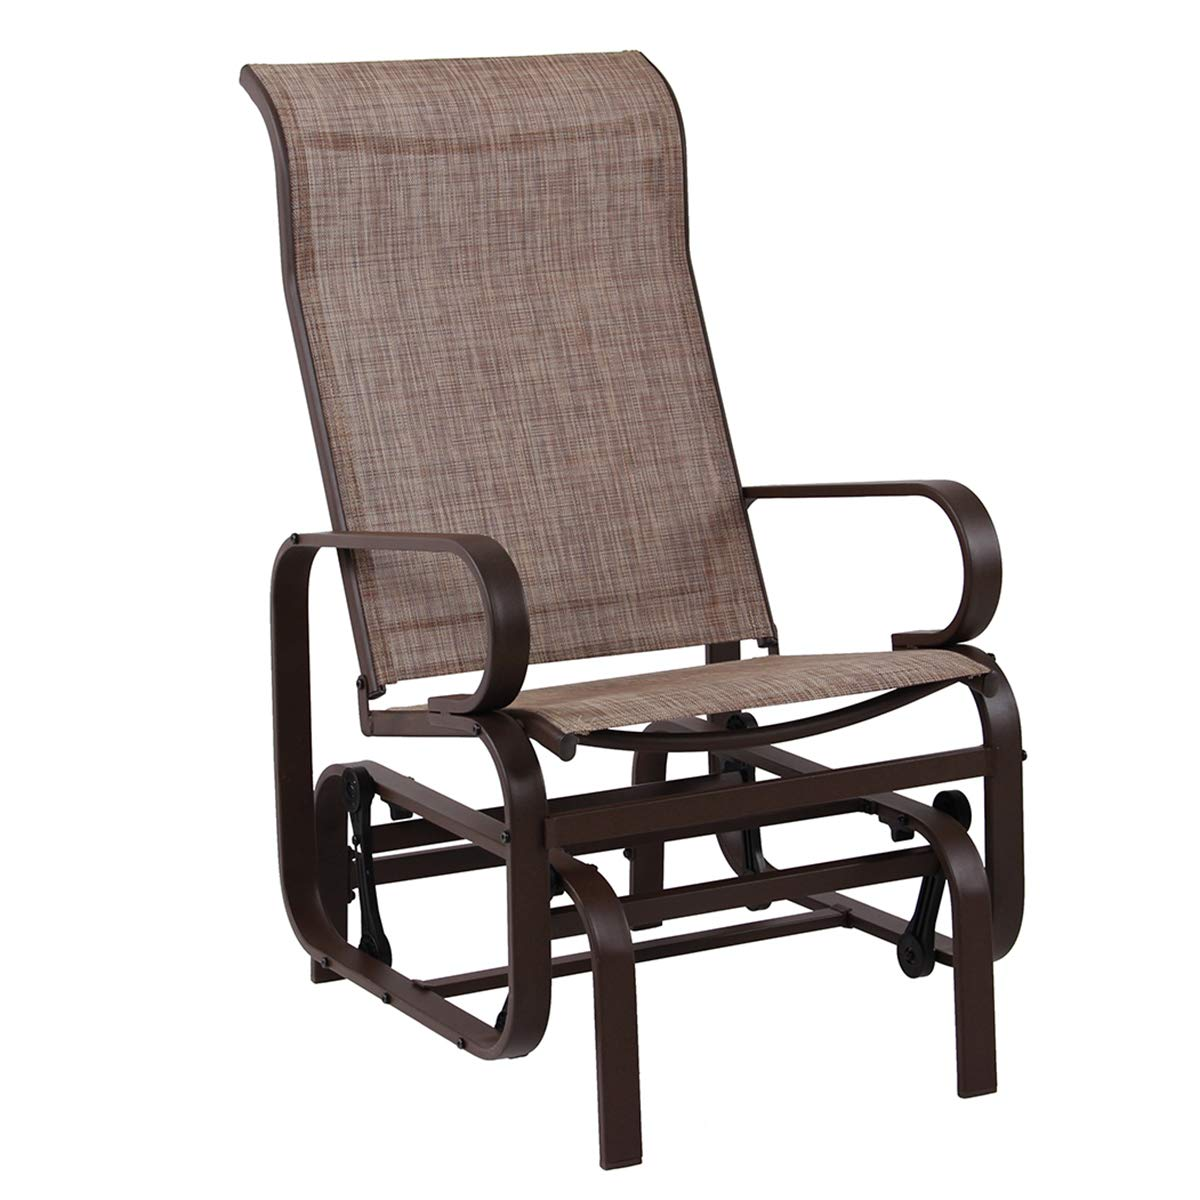 Galleon phi villa swing glider chair patio rocking chair garden furniture textilene mesh steel frame single glider